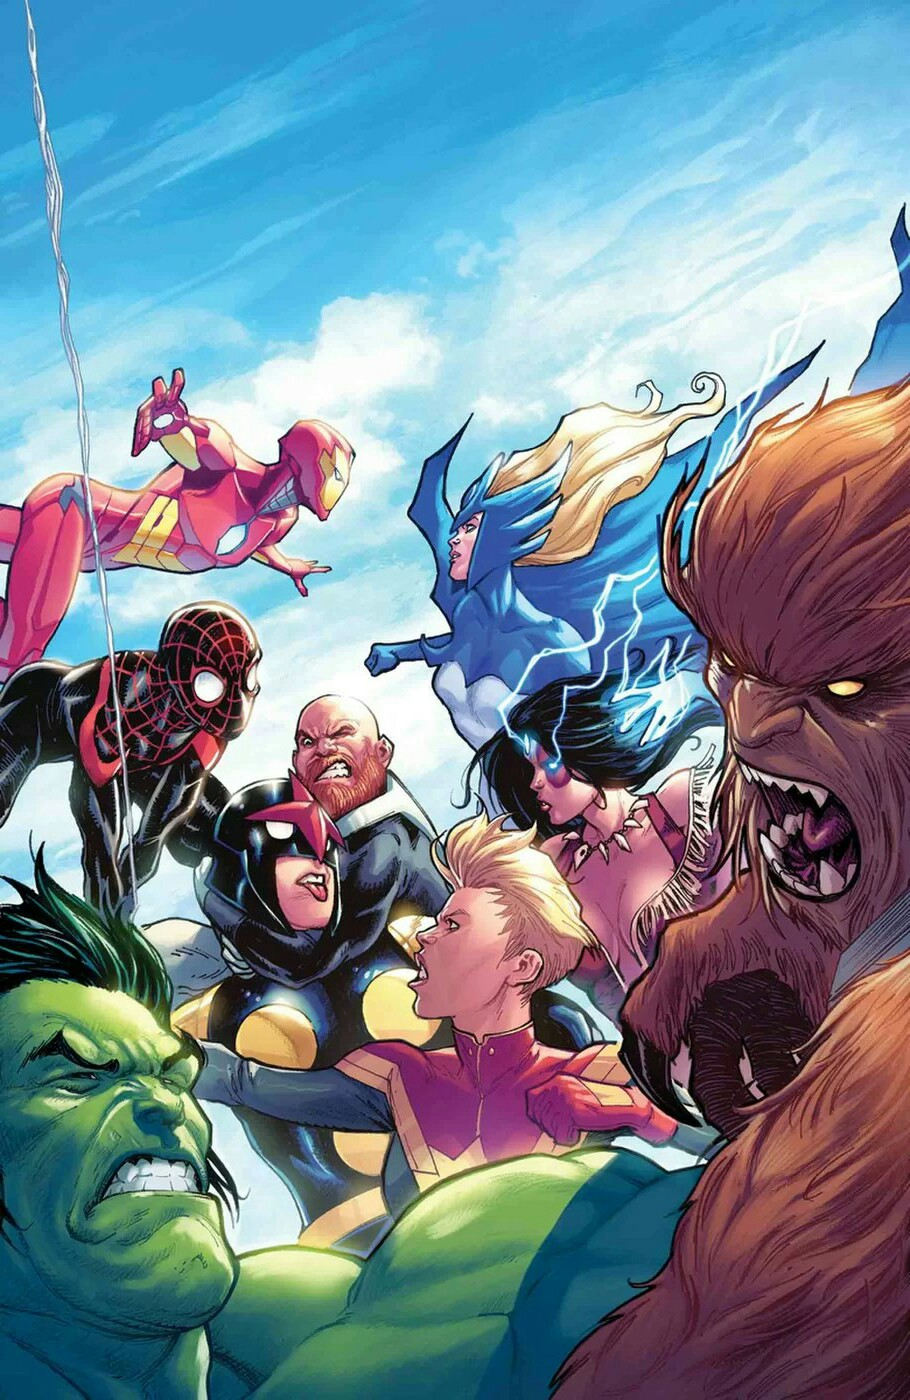 Champions Vol 2 21 Textless.jpg